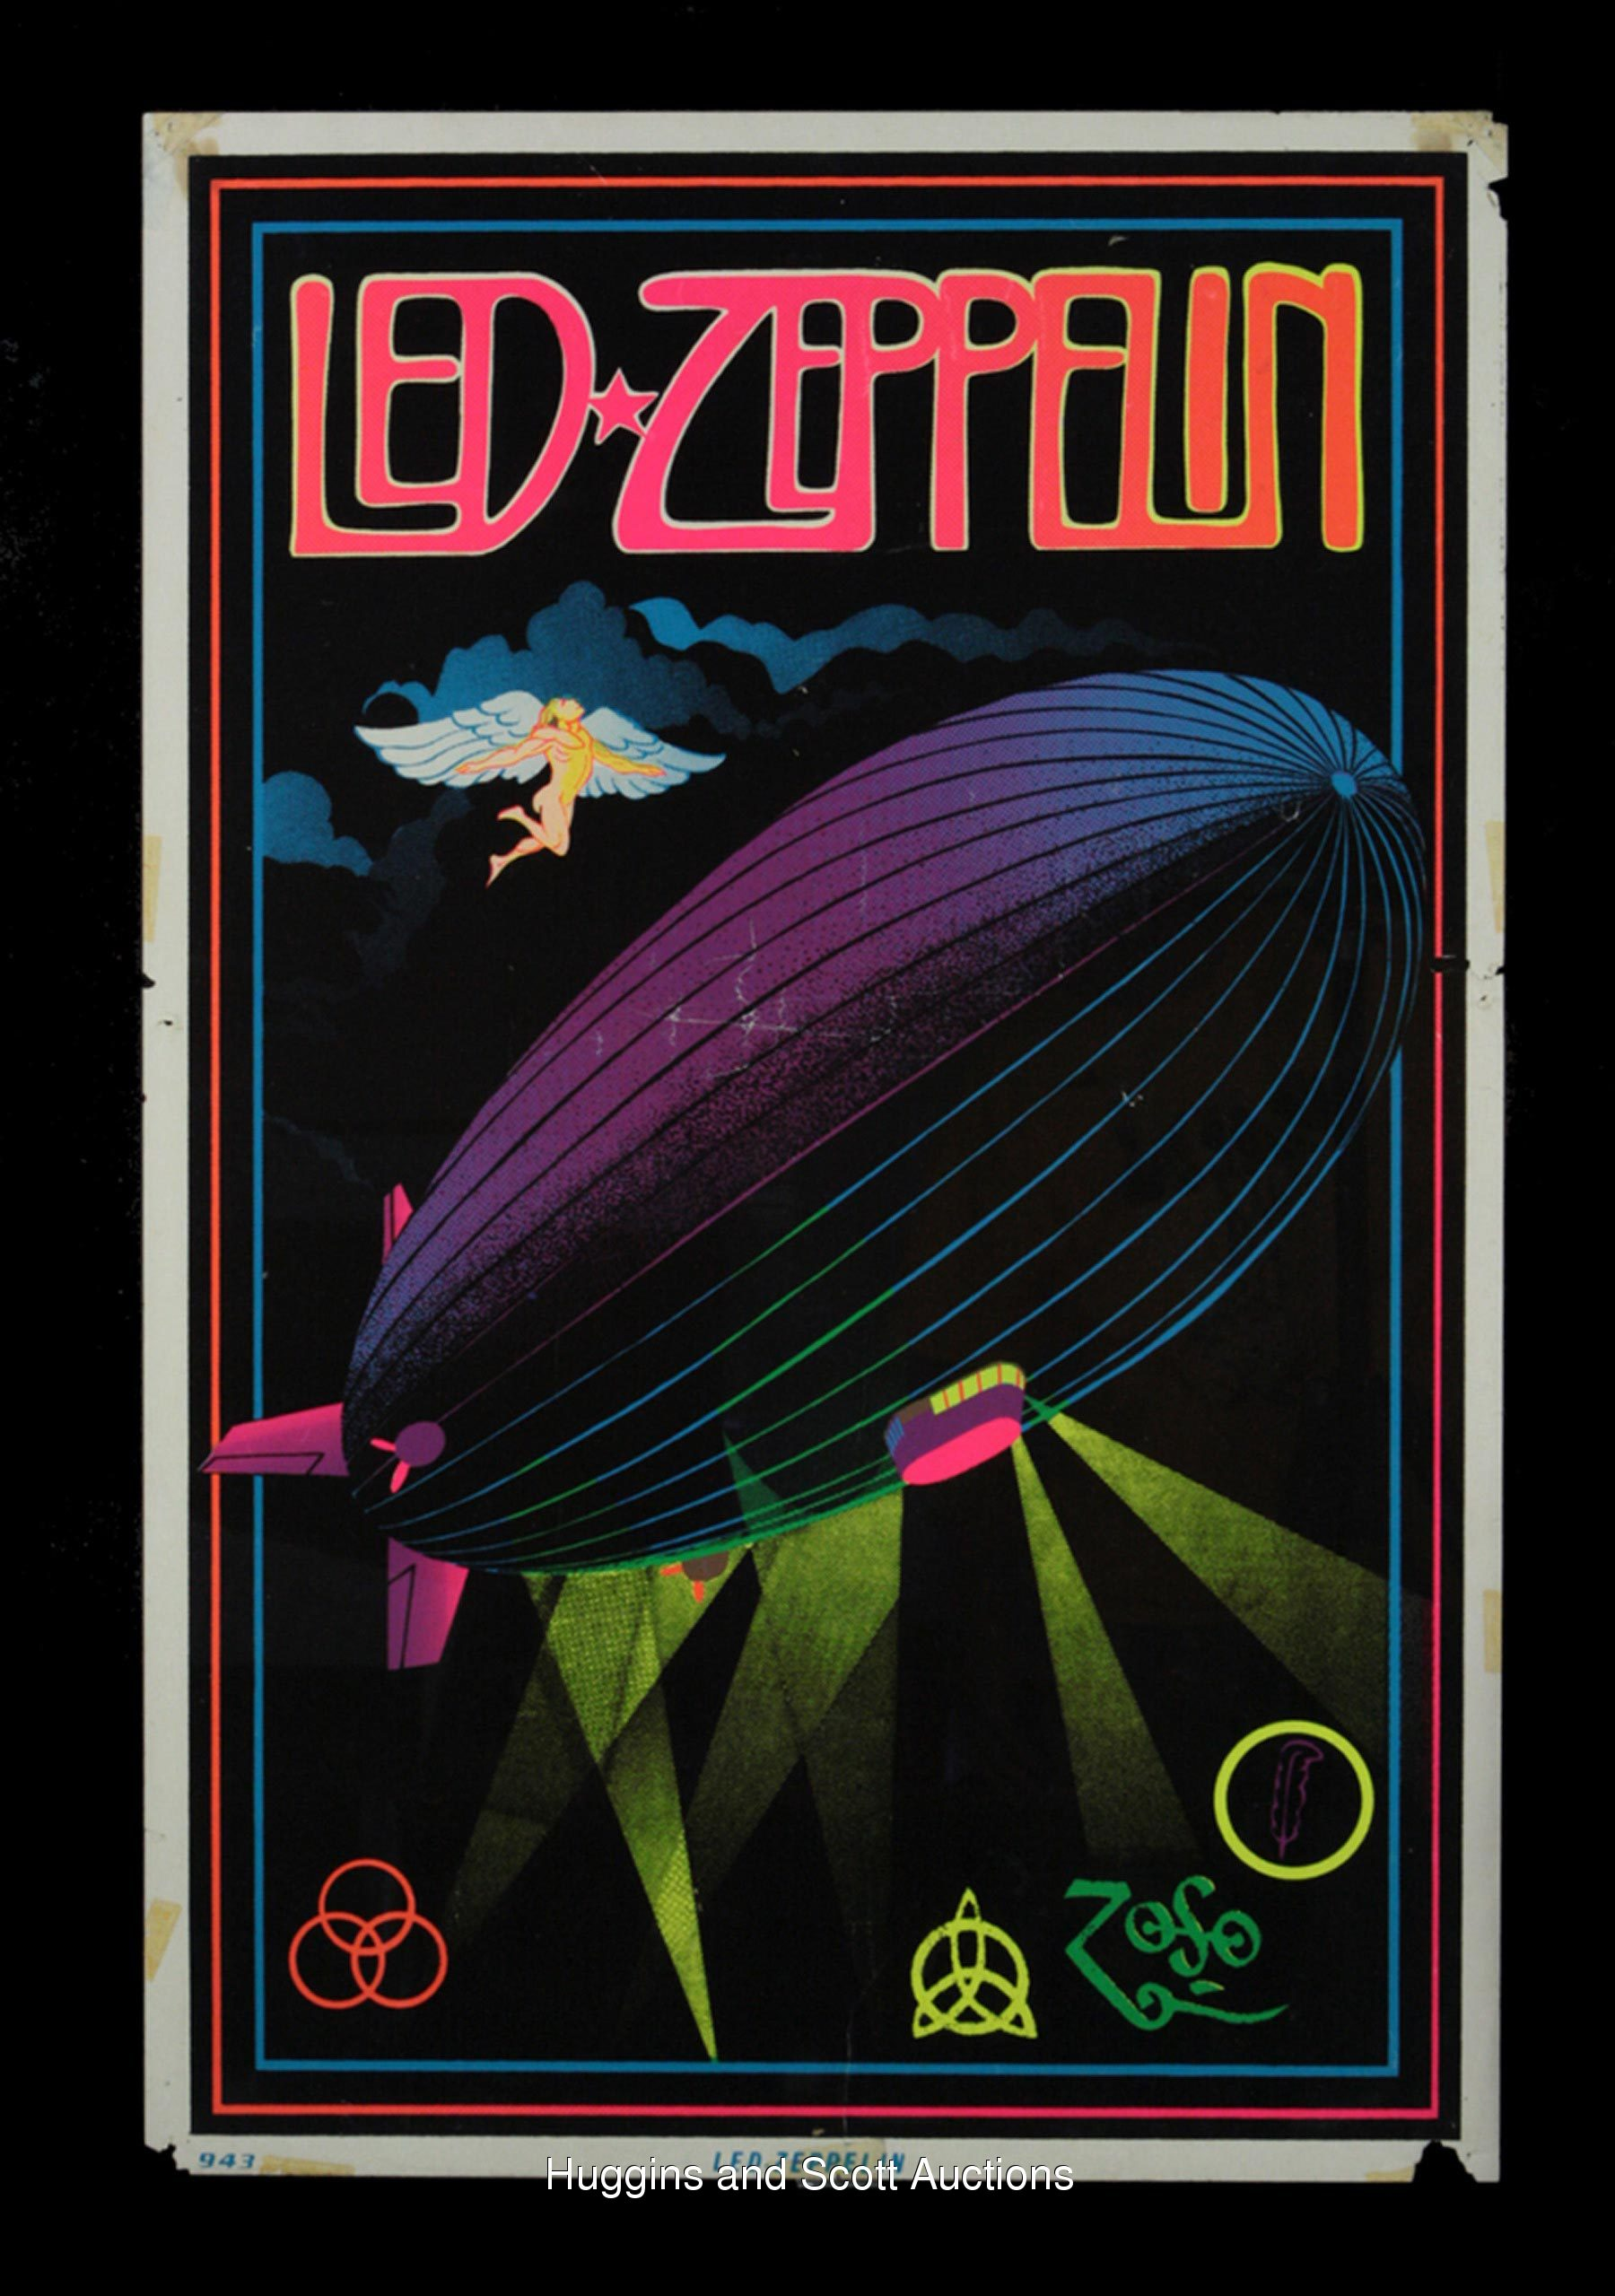 vintage black light music posters jpg 422x640